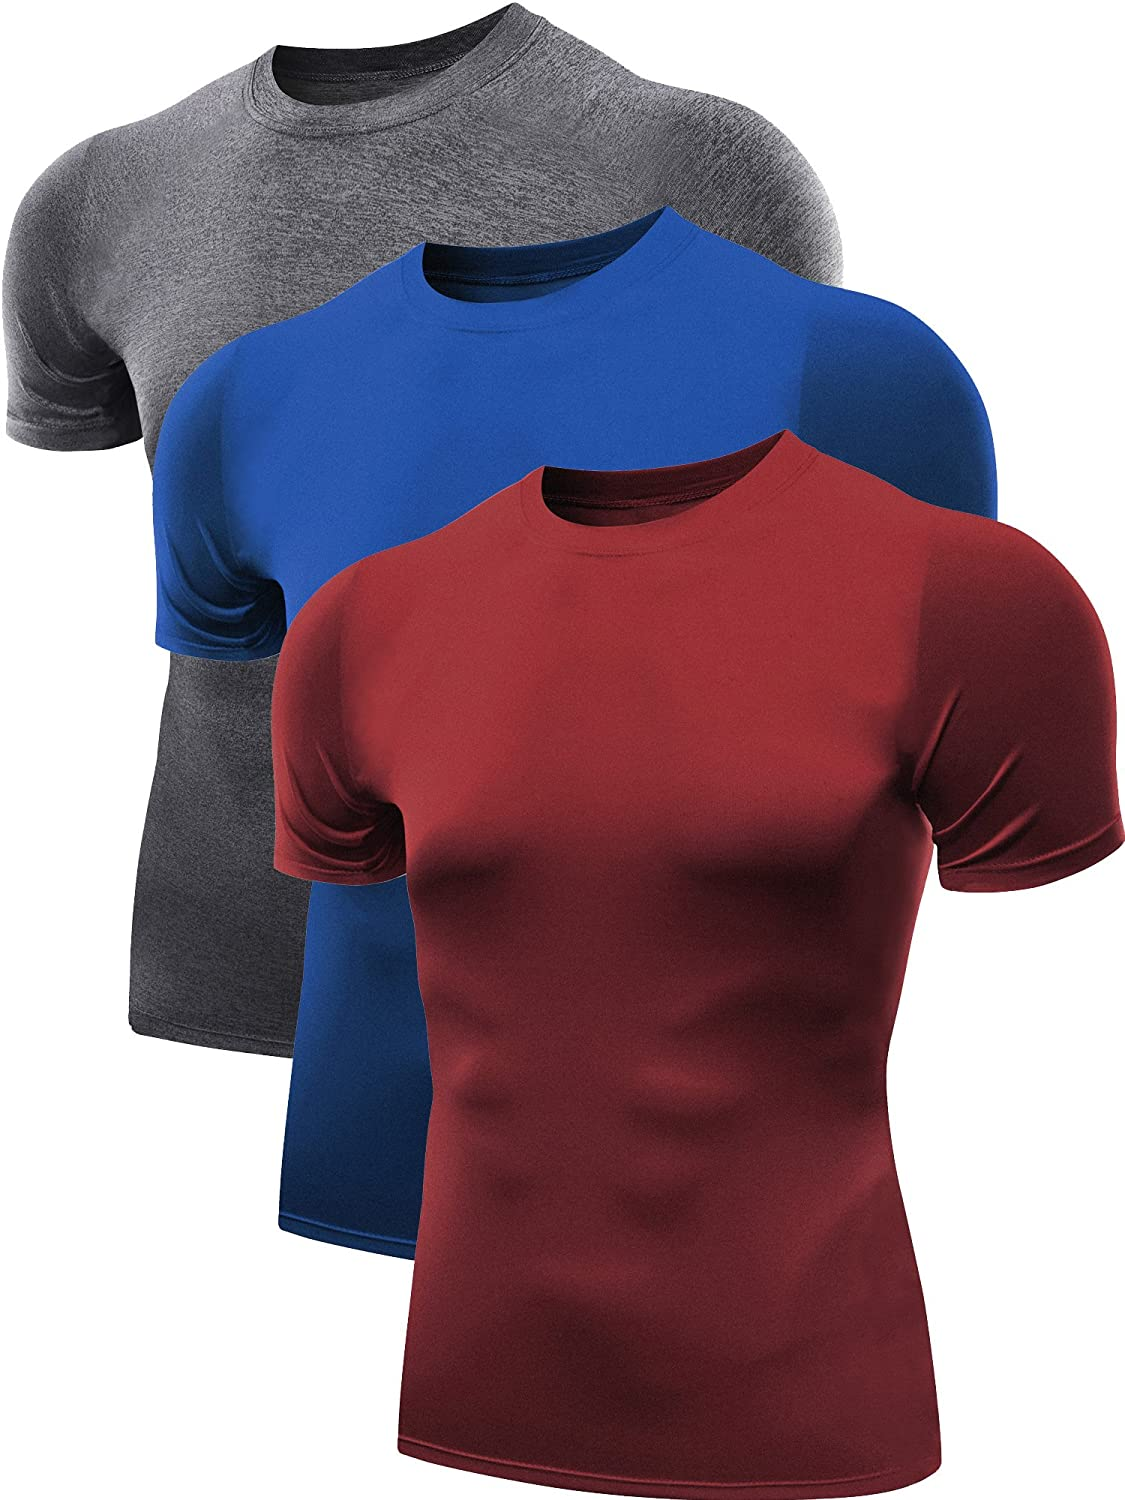 Neleus Men's 3 Pack Athletic Compression Under Base Layer Sport Shirt NDT0003